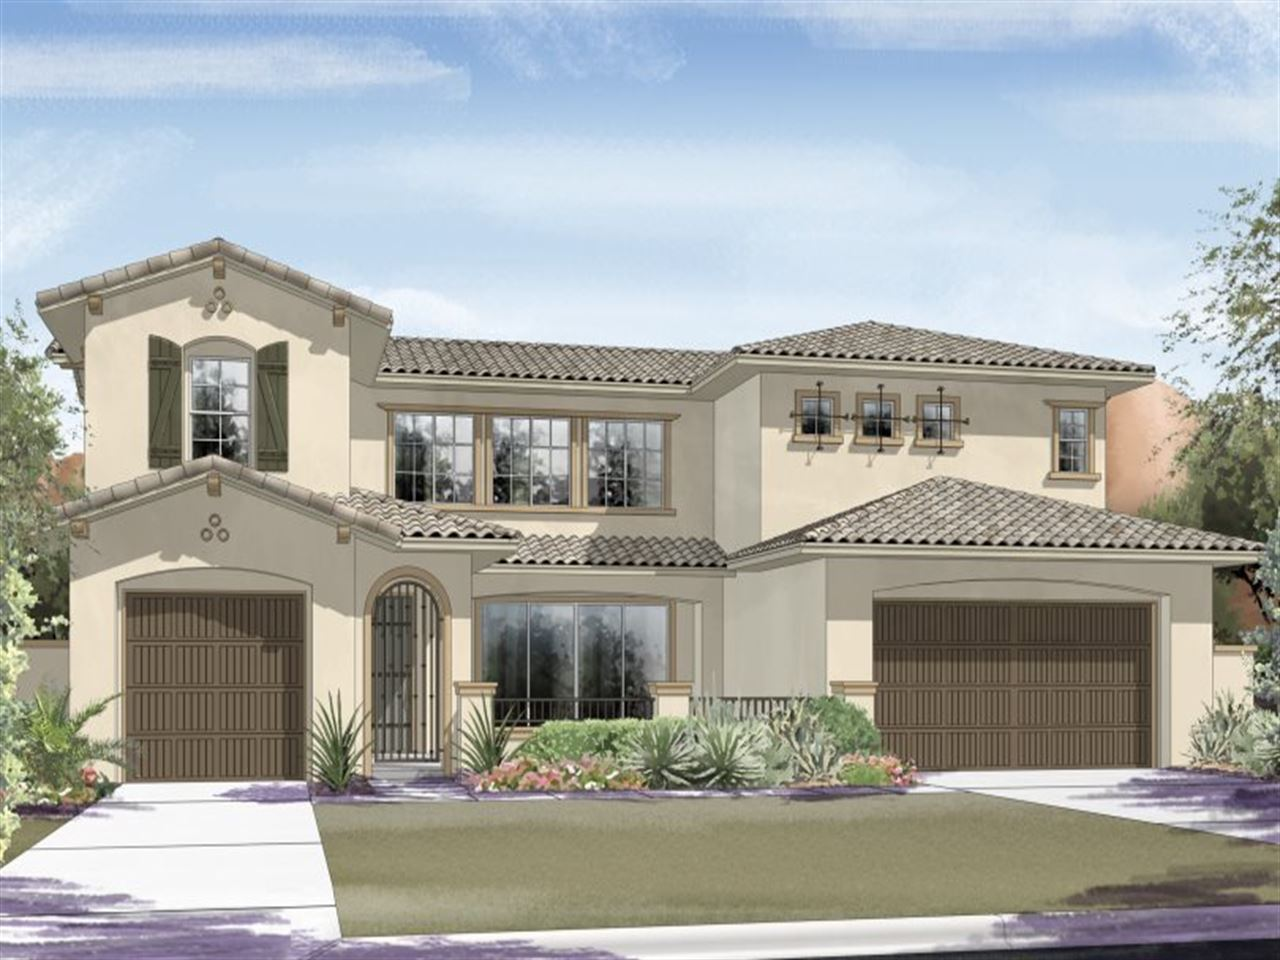 Las vegas new homes new construction home builders for New modern homes las vegas